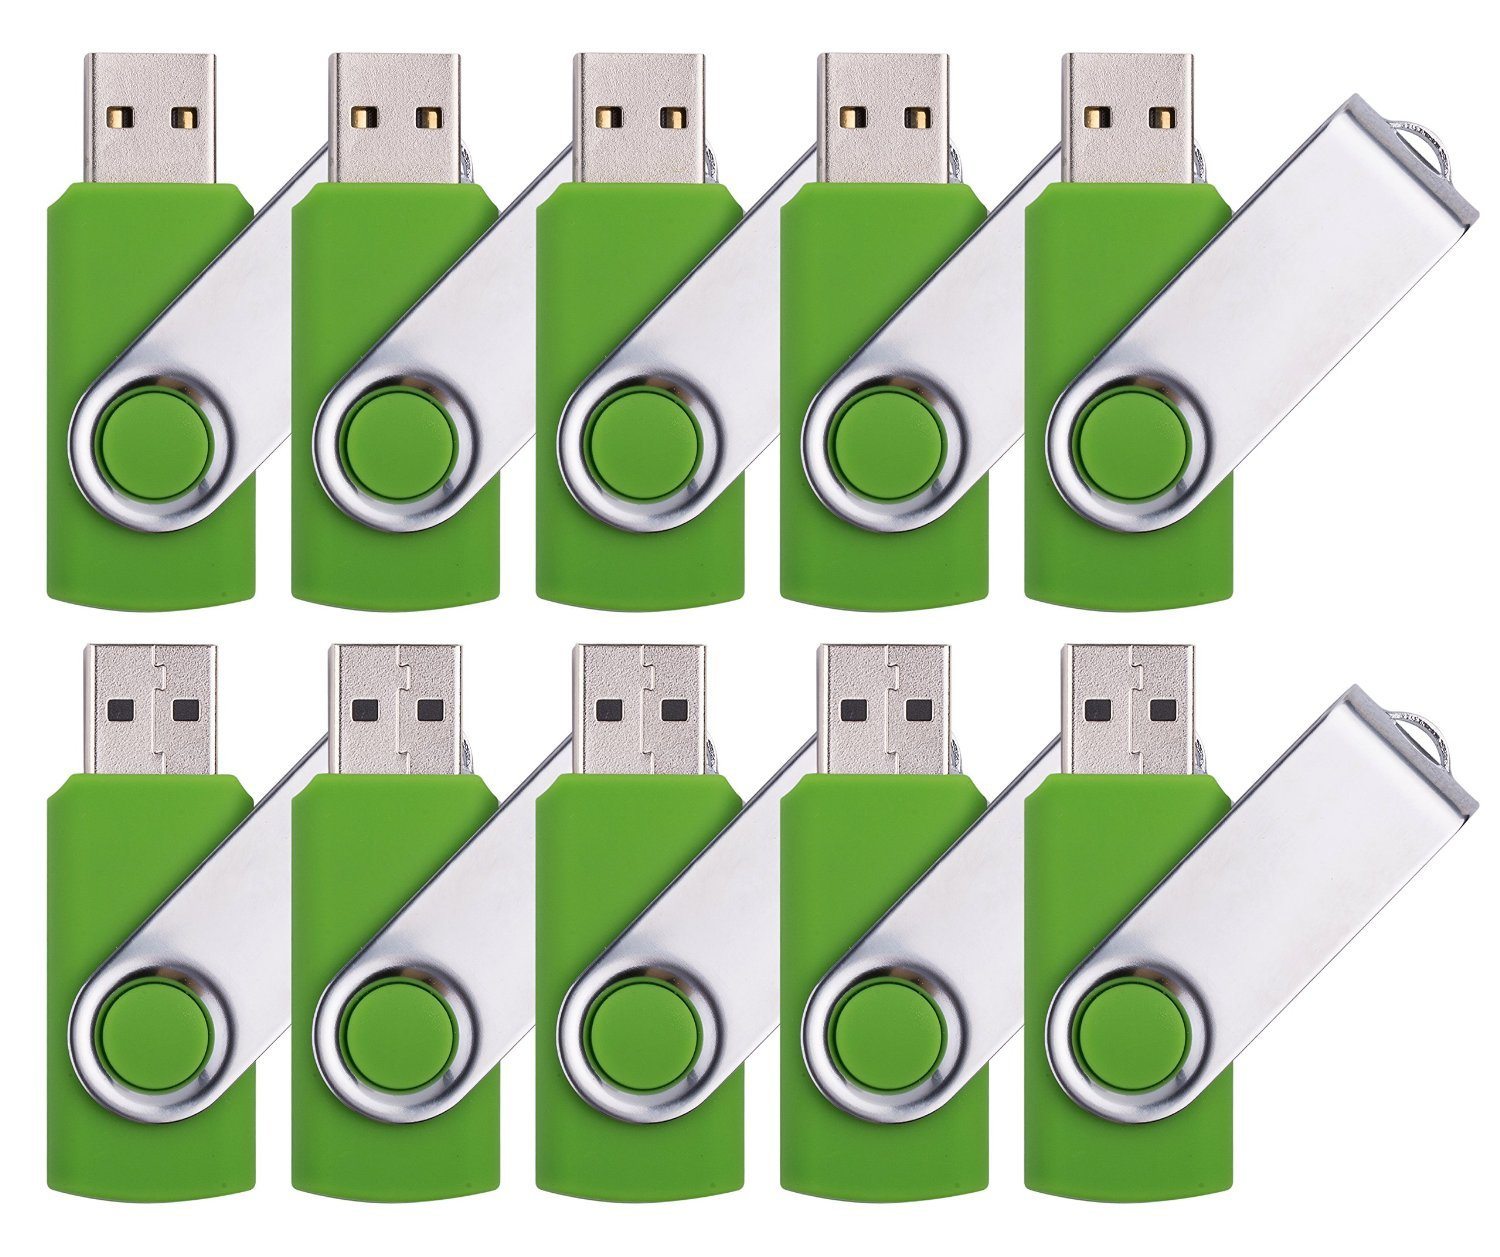 DDC 50pcs 1GB USB 2.0 Flash Drive Memory Stick Fold Storage Thumb Stick Pen Swivel Design Green